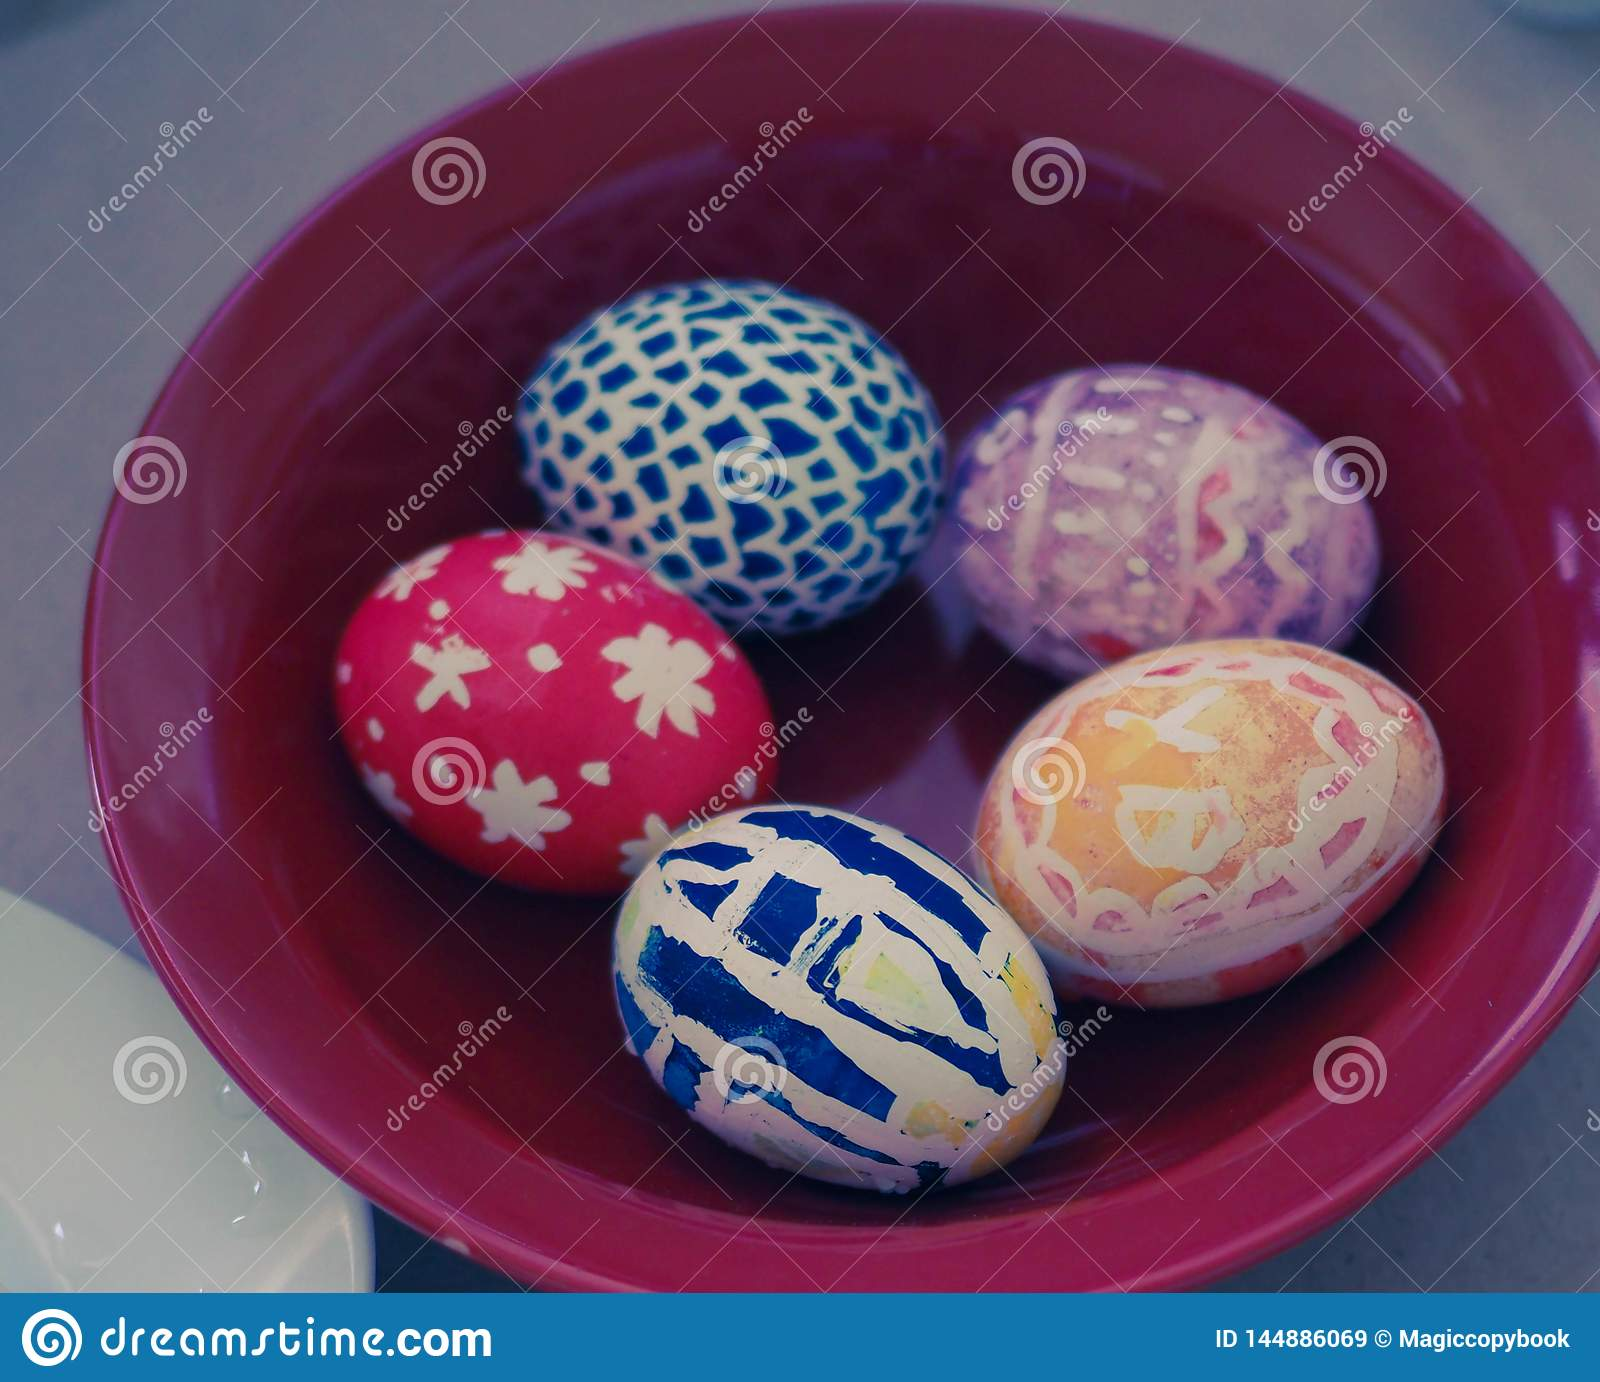 Painted eggs on plate